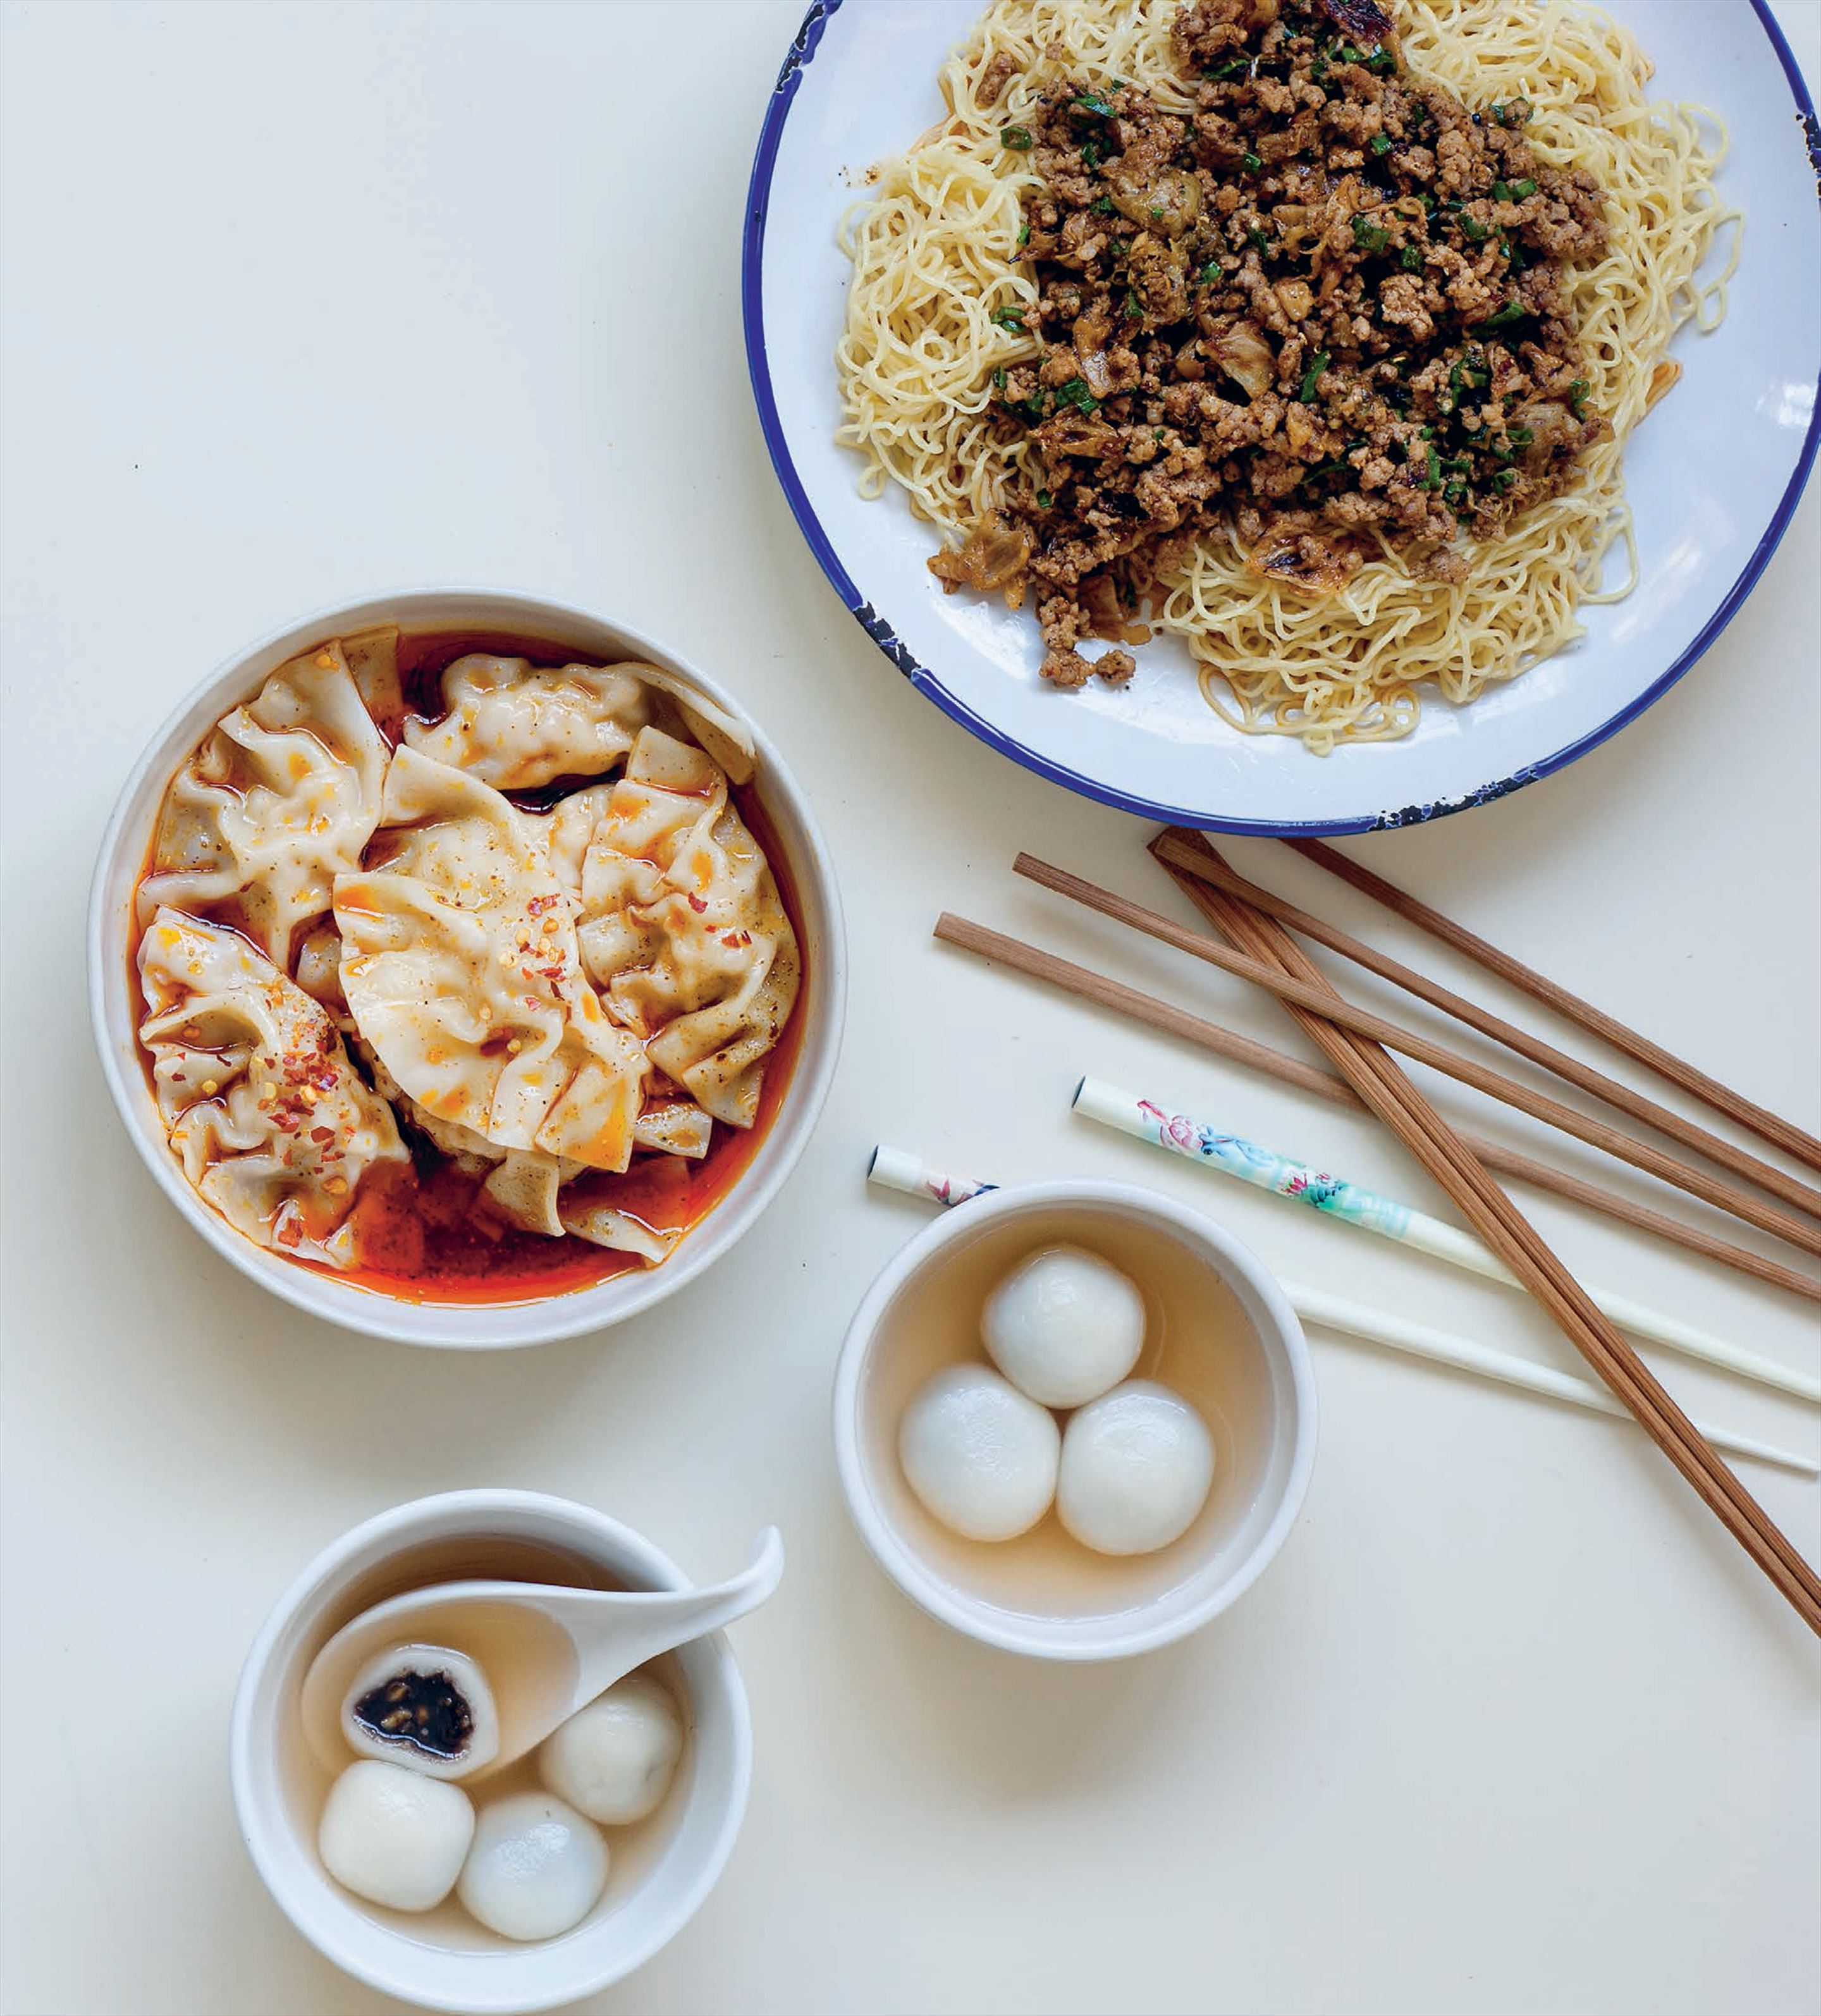 Sichuan dumplings in chilli